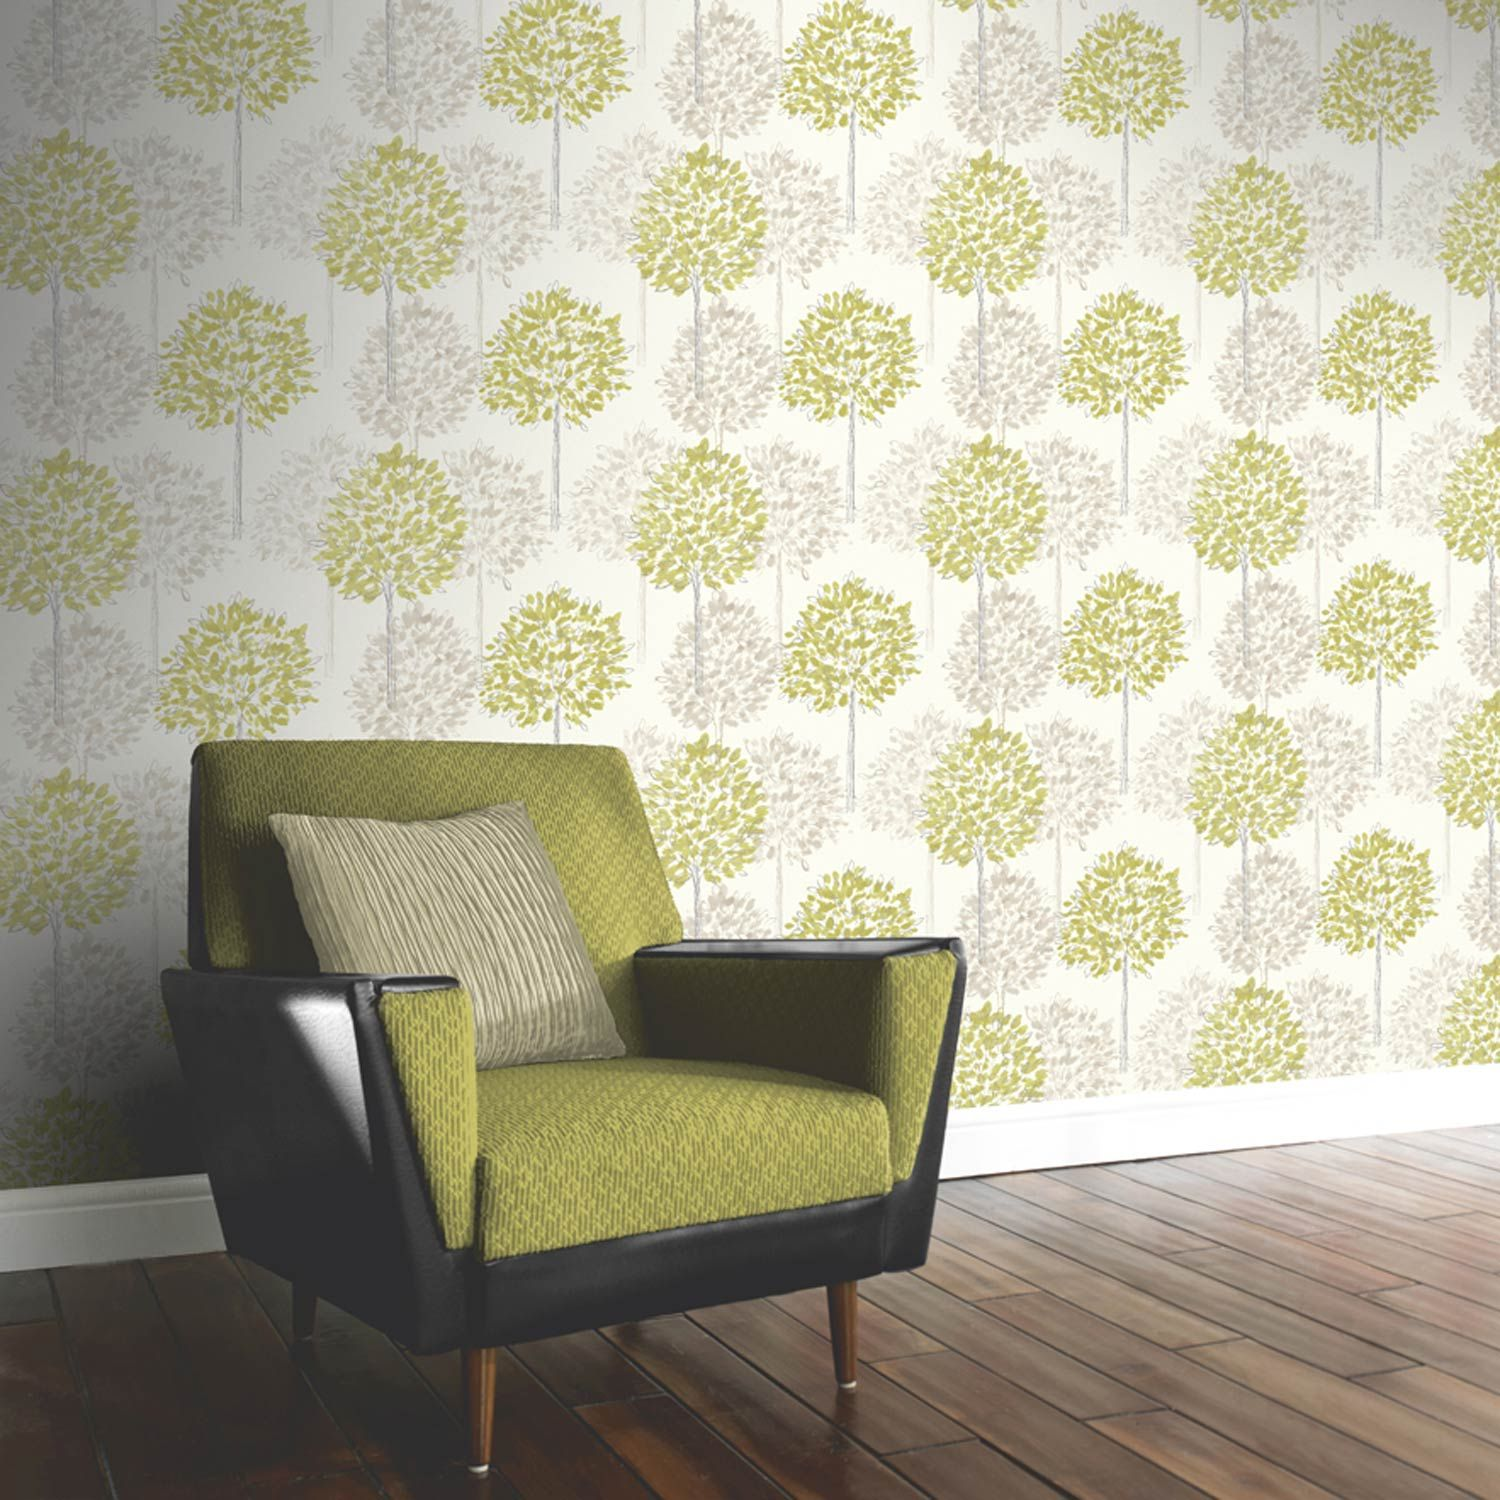 Boulevard Green Wallpaper by Arthouse at The Range Green